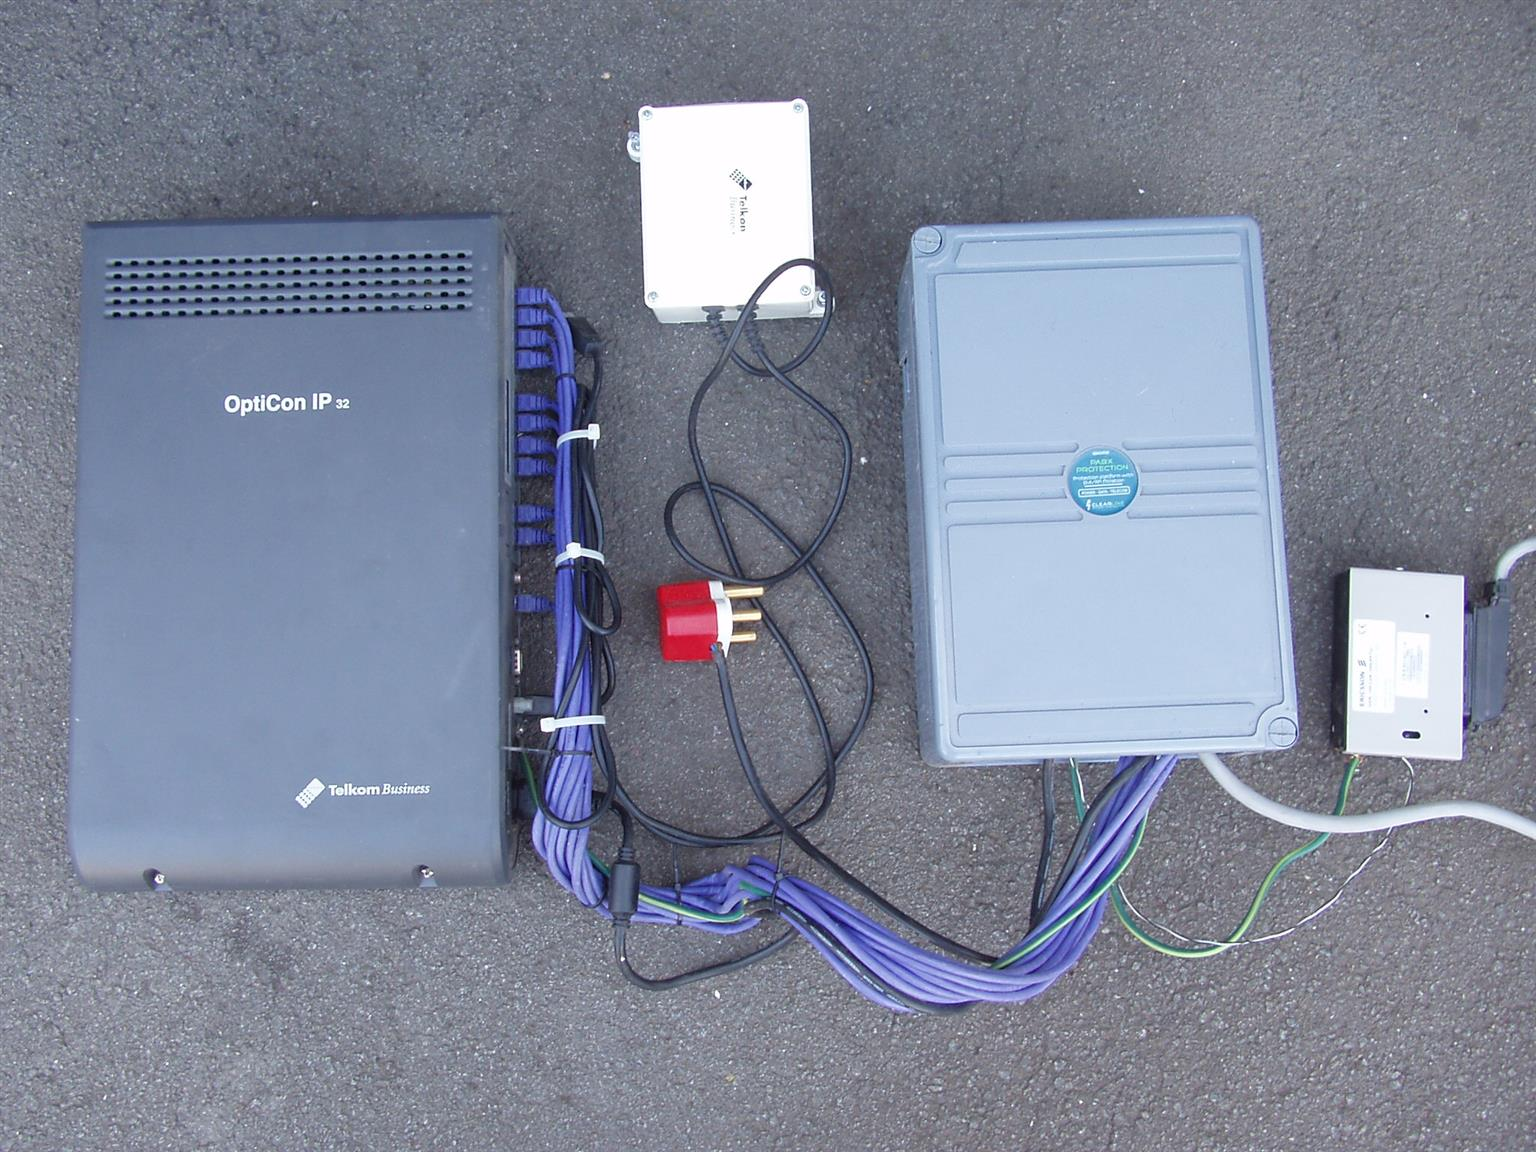 Opticon IP32 PABX System - complete